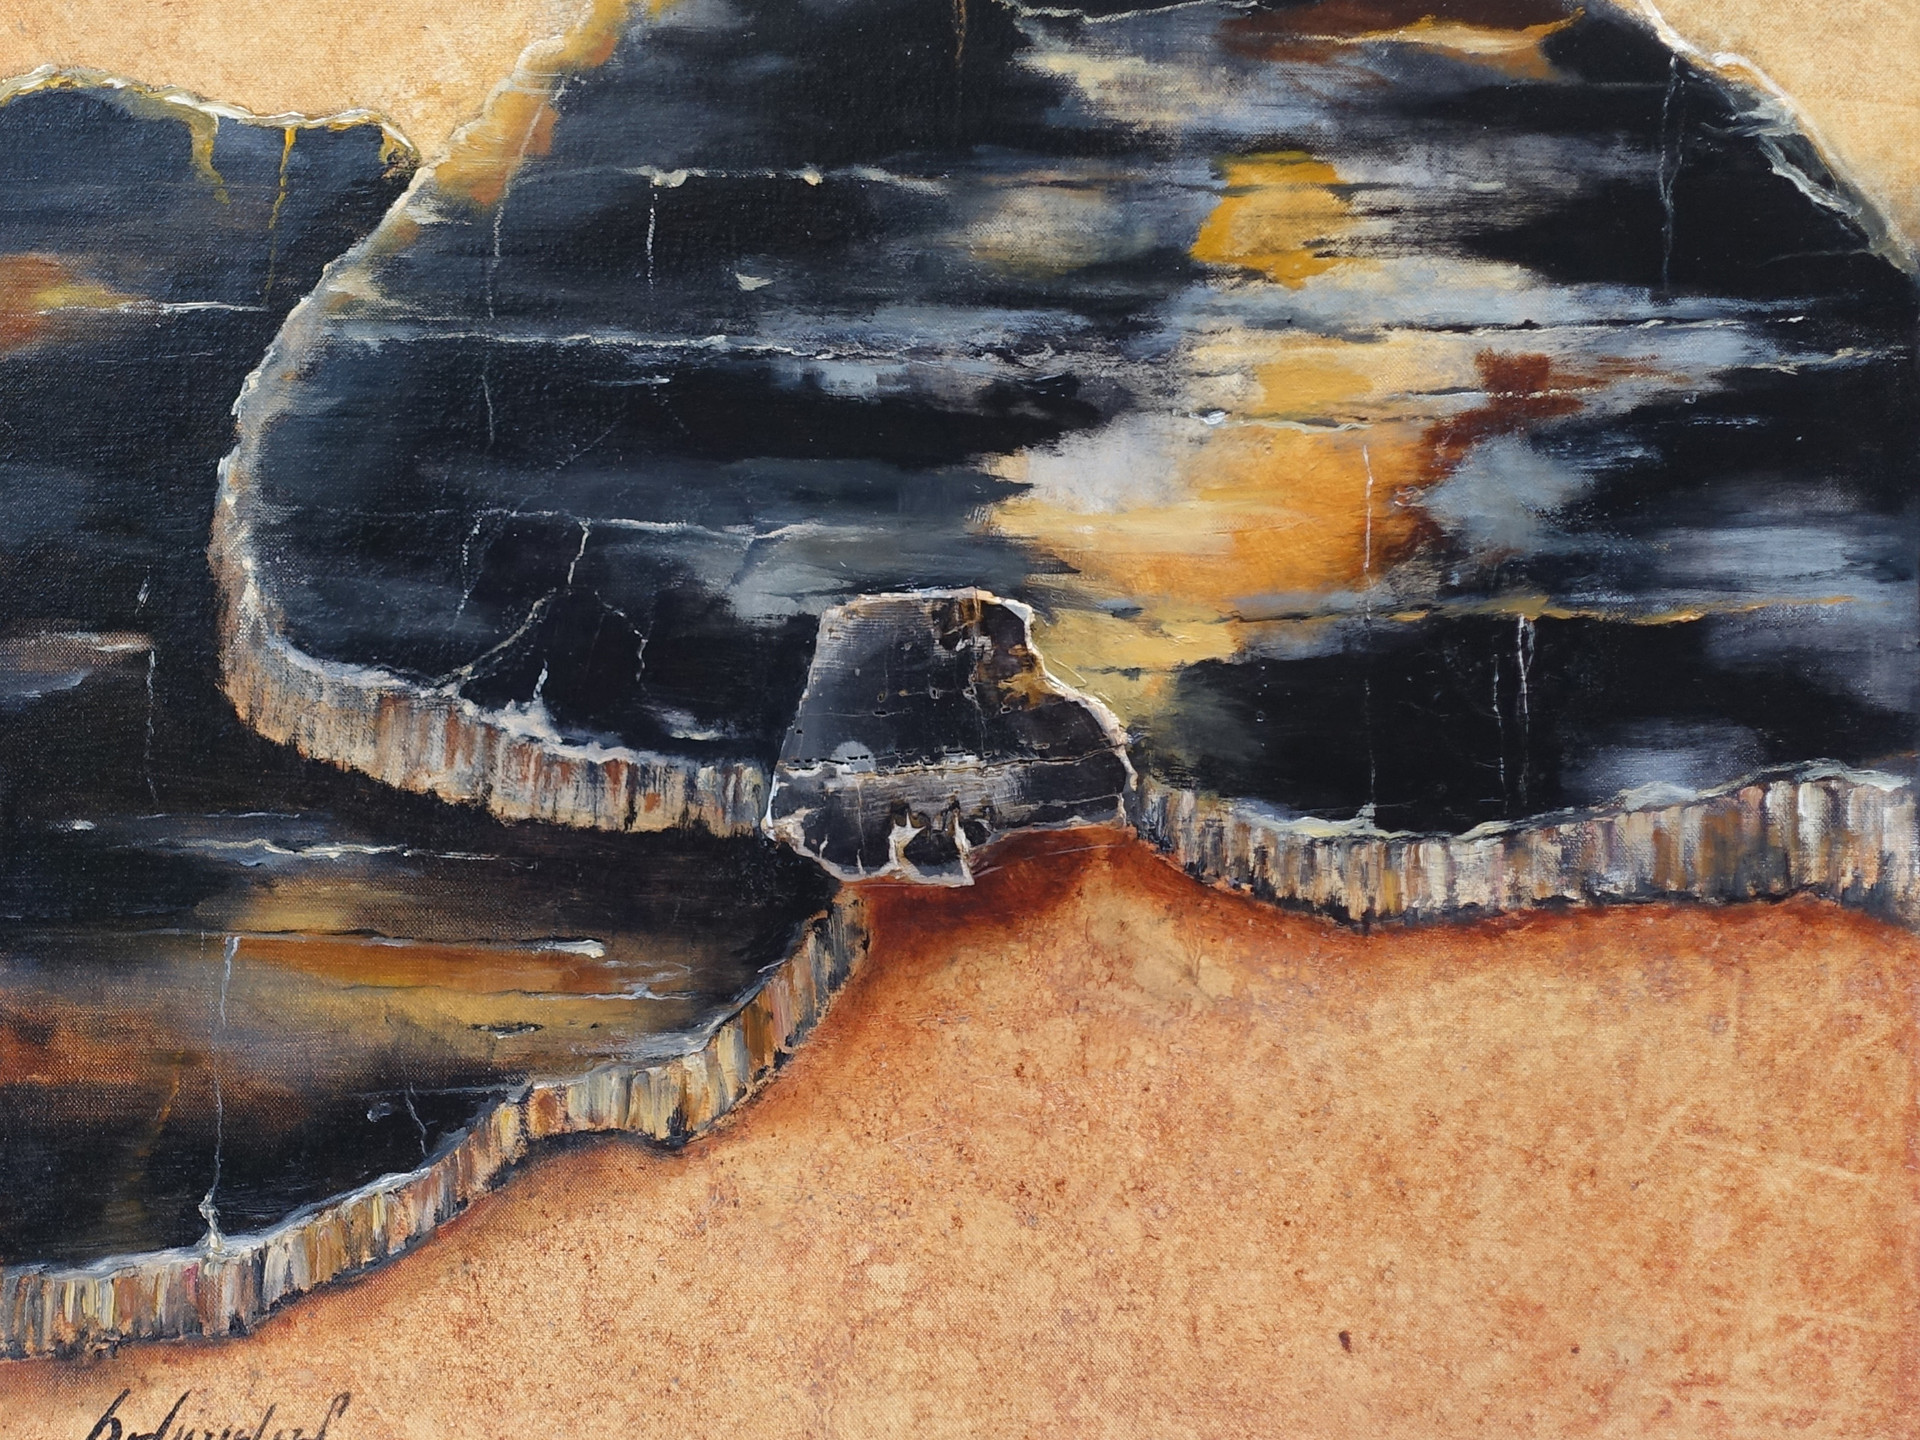 Spirit of the planet PETRIFIED WOOD 60x60 cm (mineral - oilpainting - mixed media)